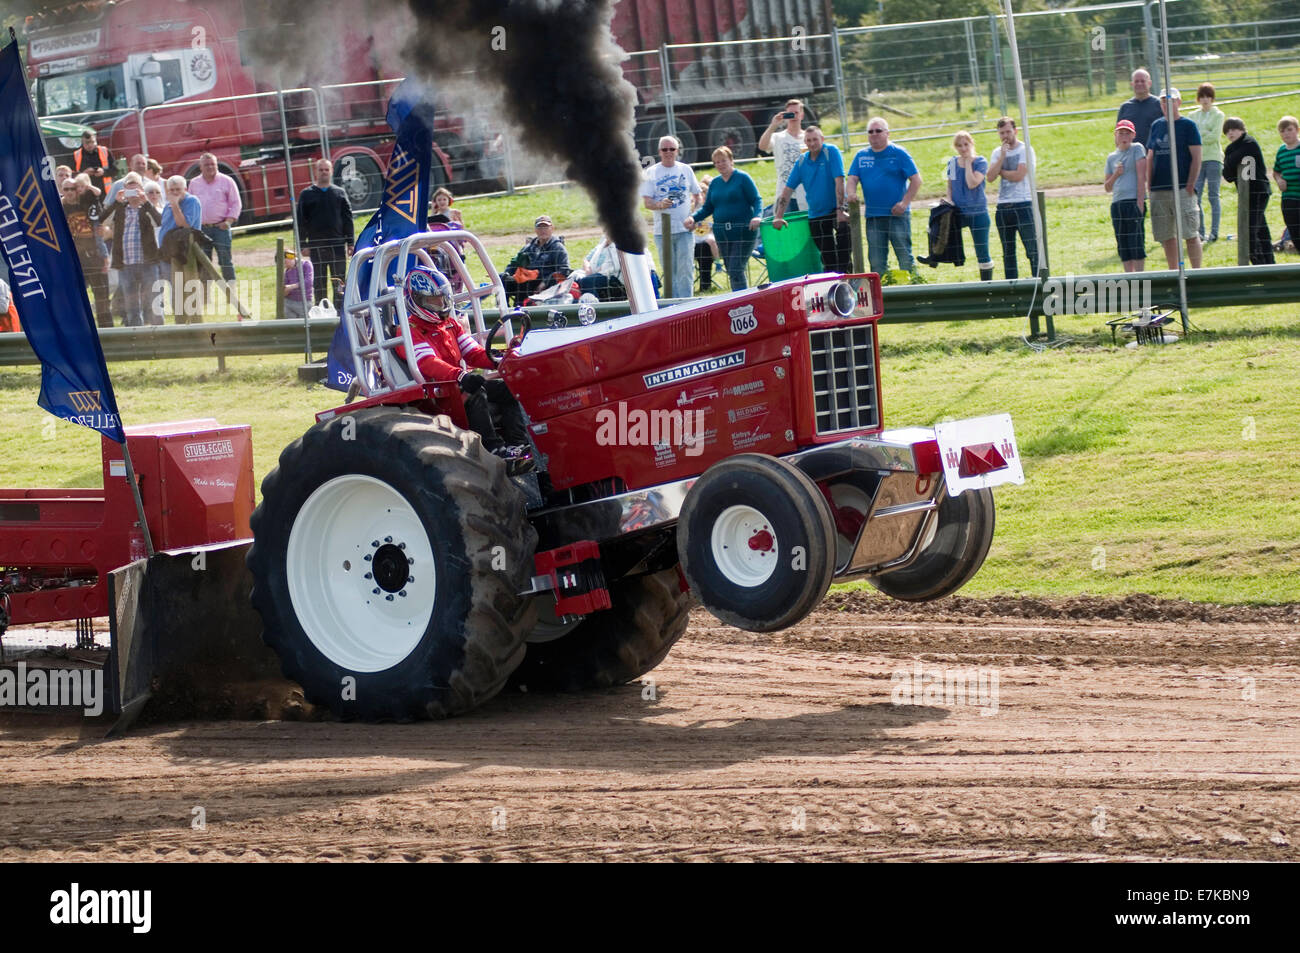 Tractor Pull Tractors : Tractor pulling puller pullers wheelie dragging a weighted